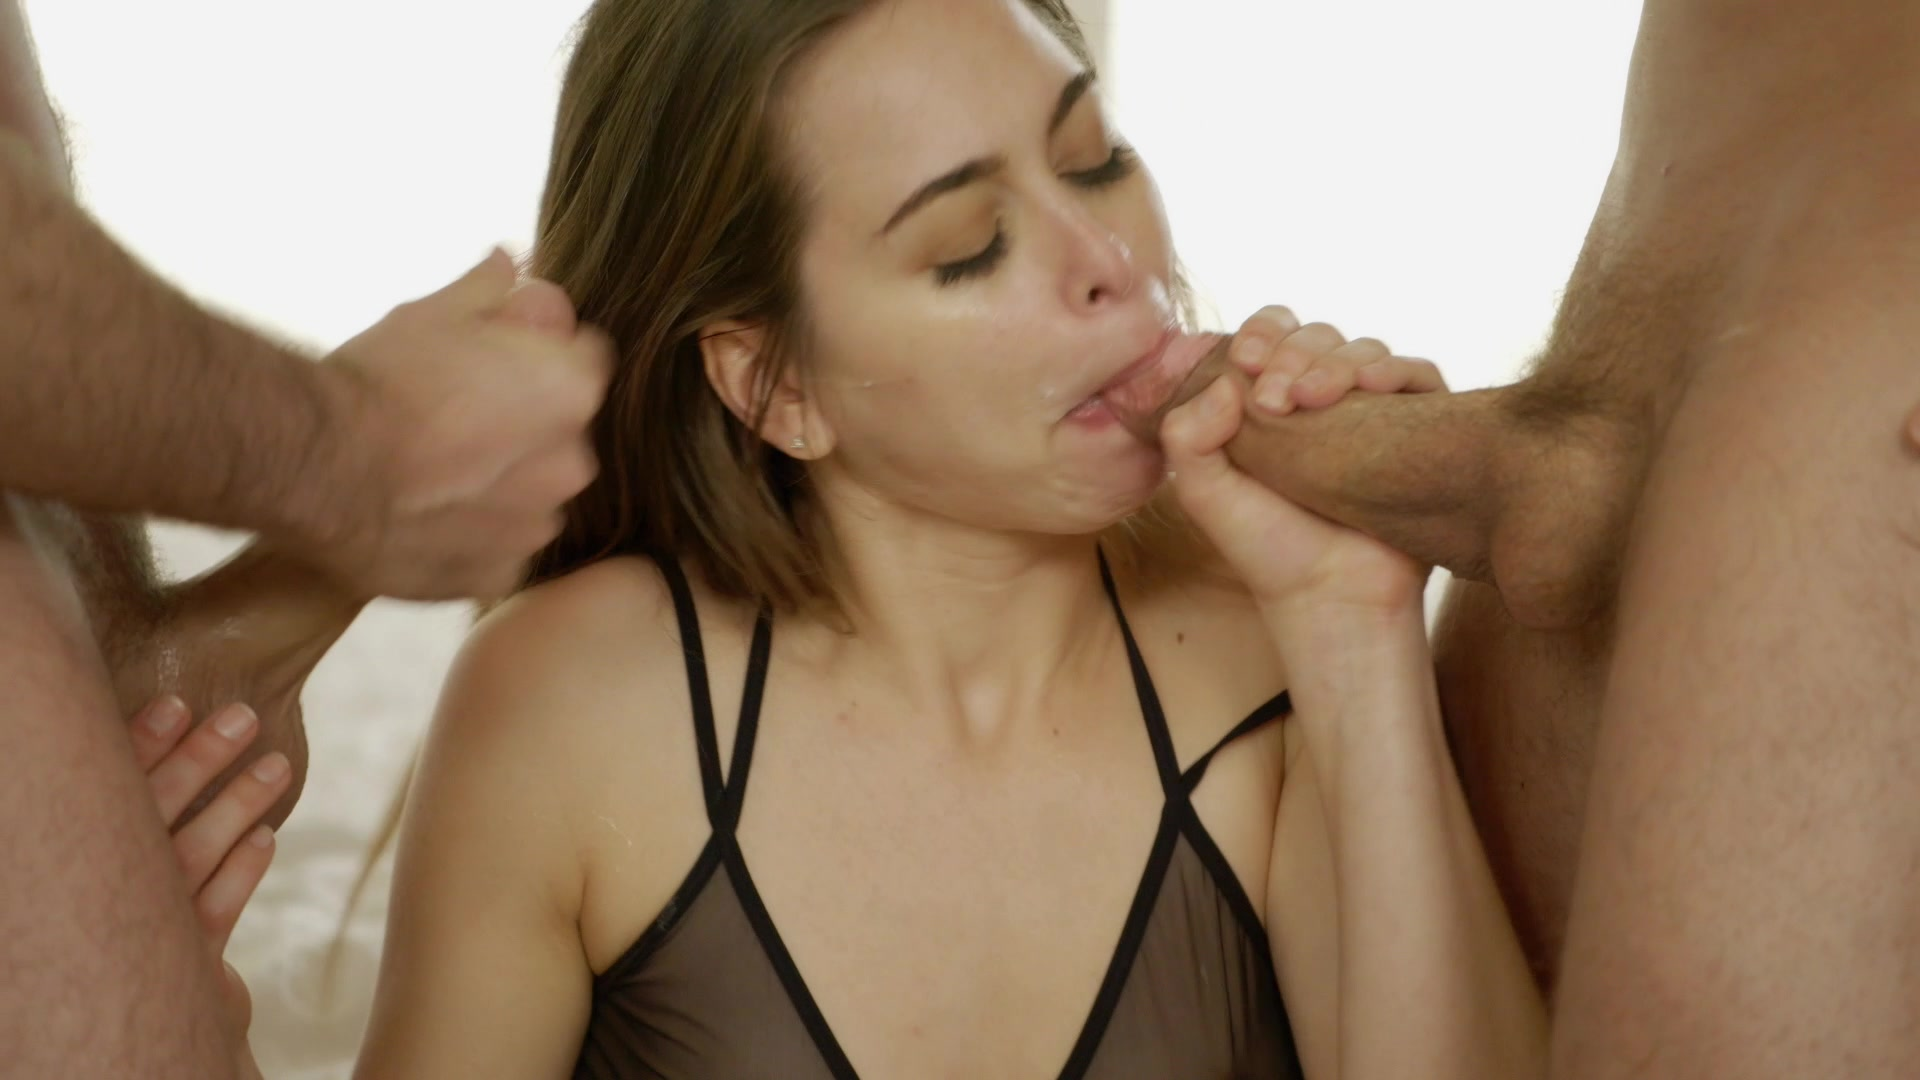 Scene with Erik Everhard, James Deen and Riley Reid - image 7 out of 20